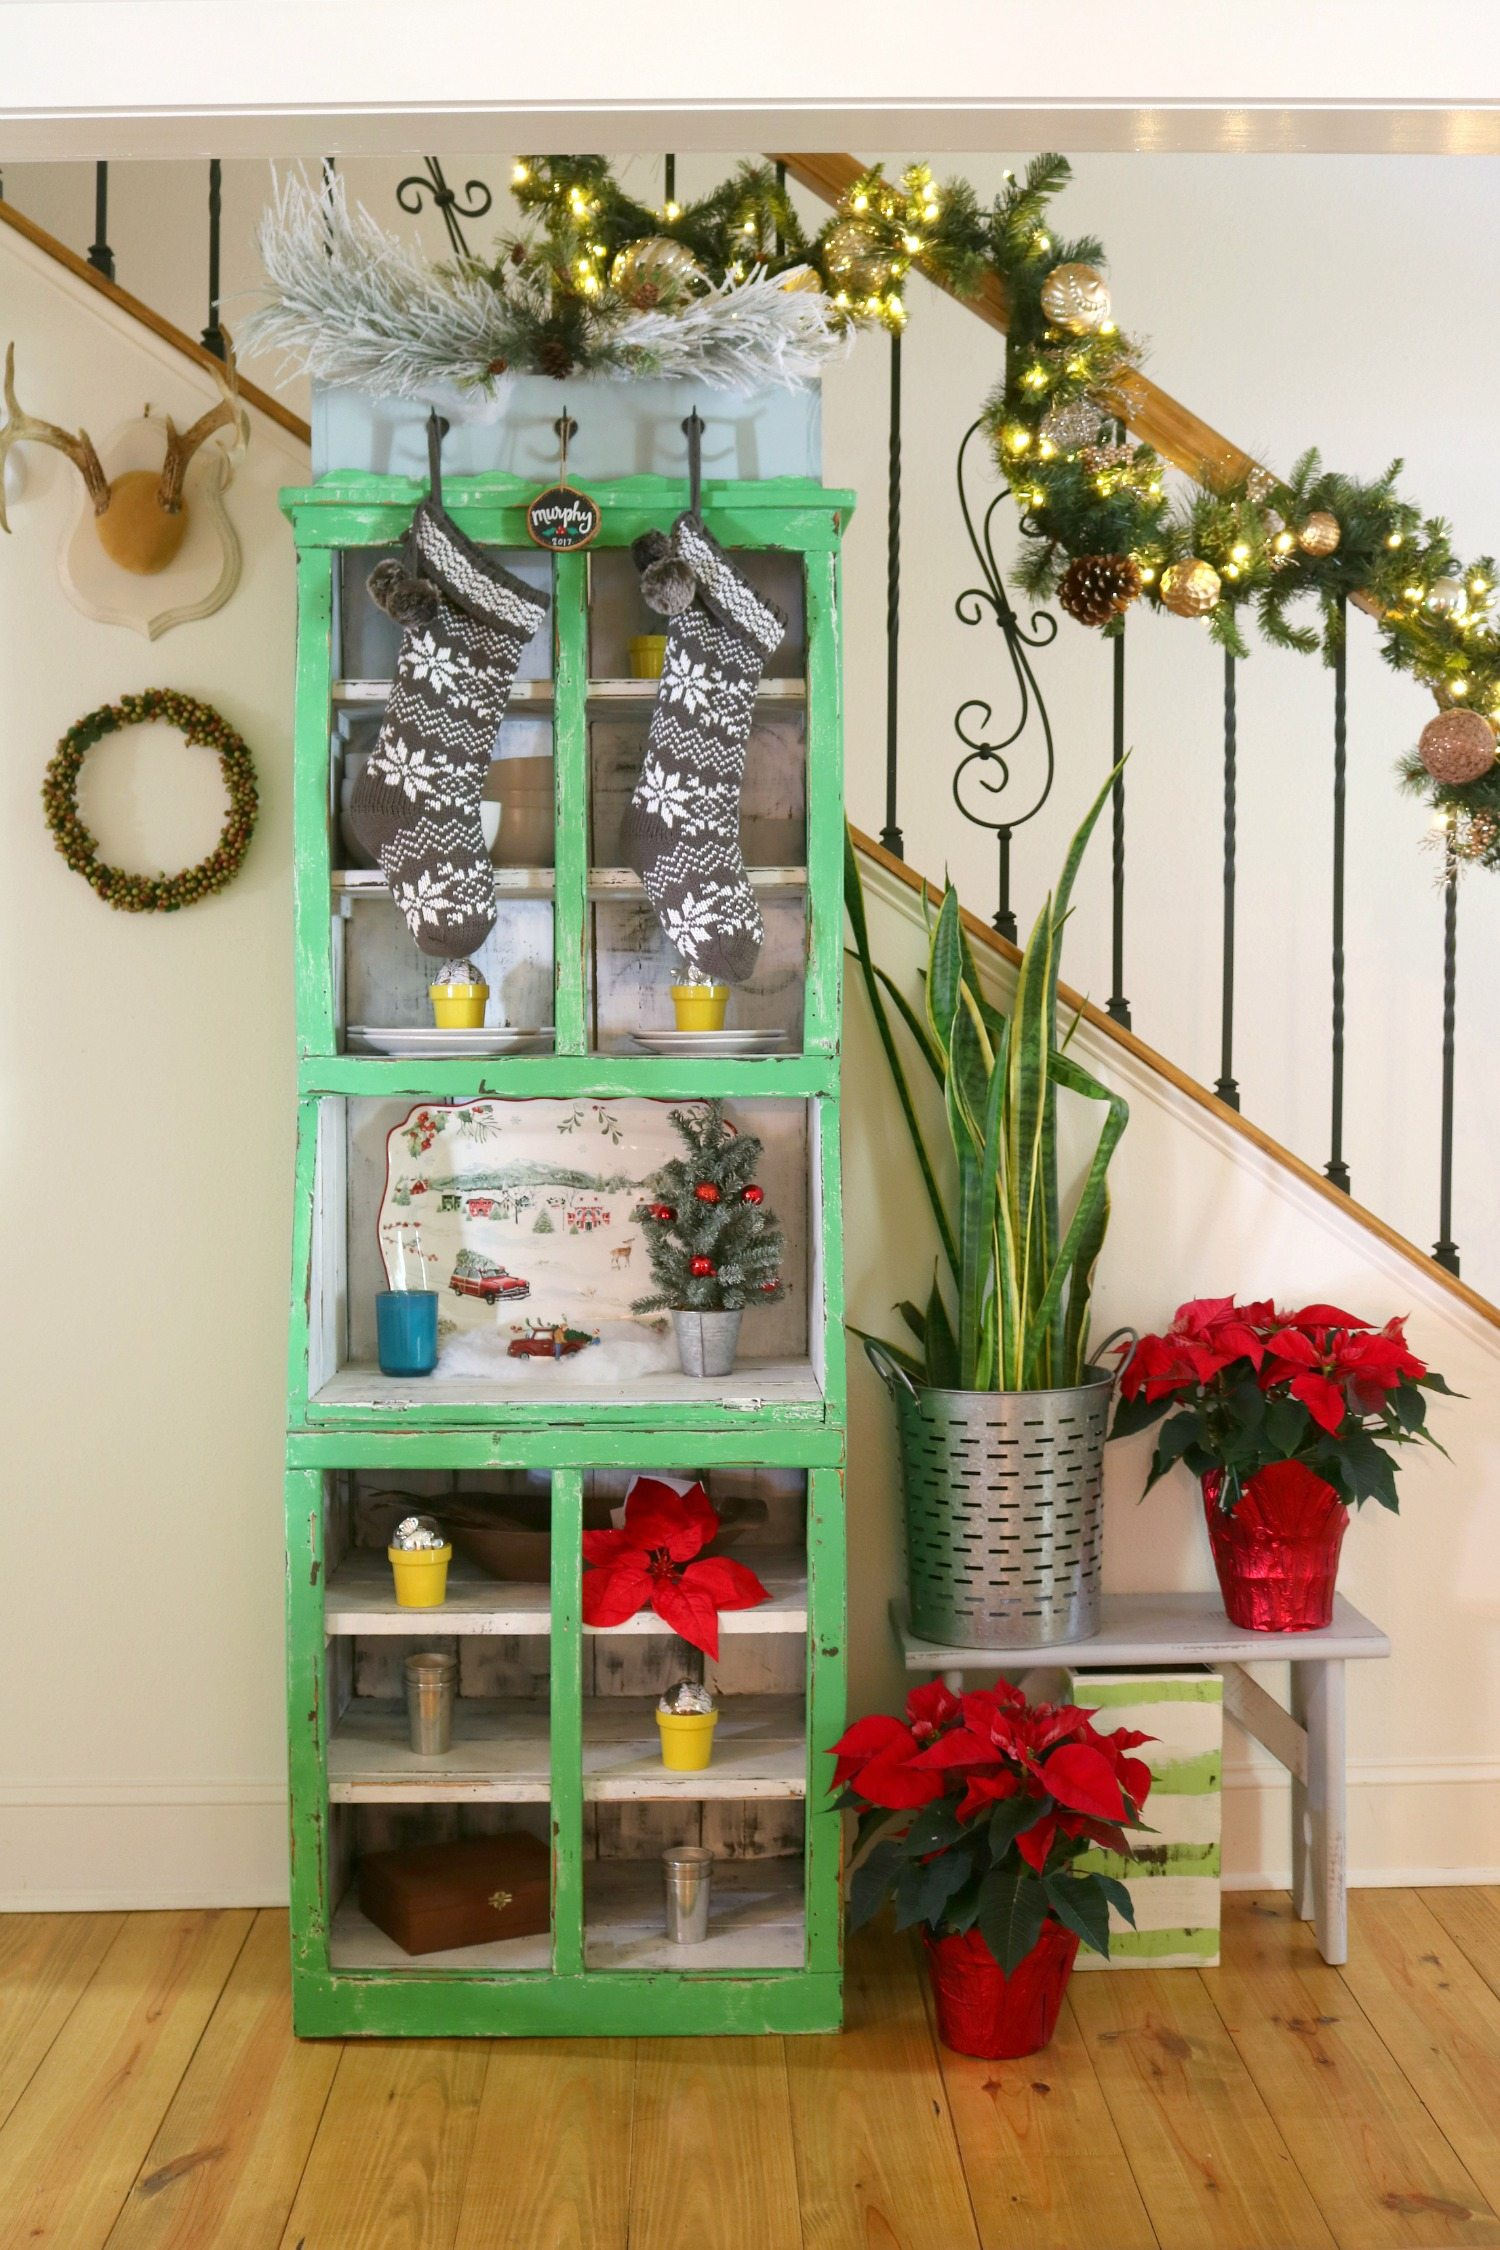 Green cabinet with Christmas decor